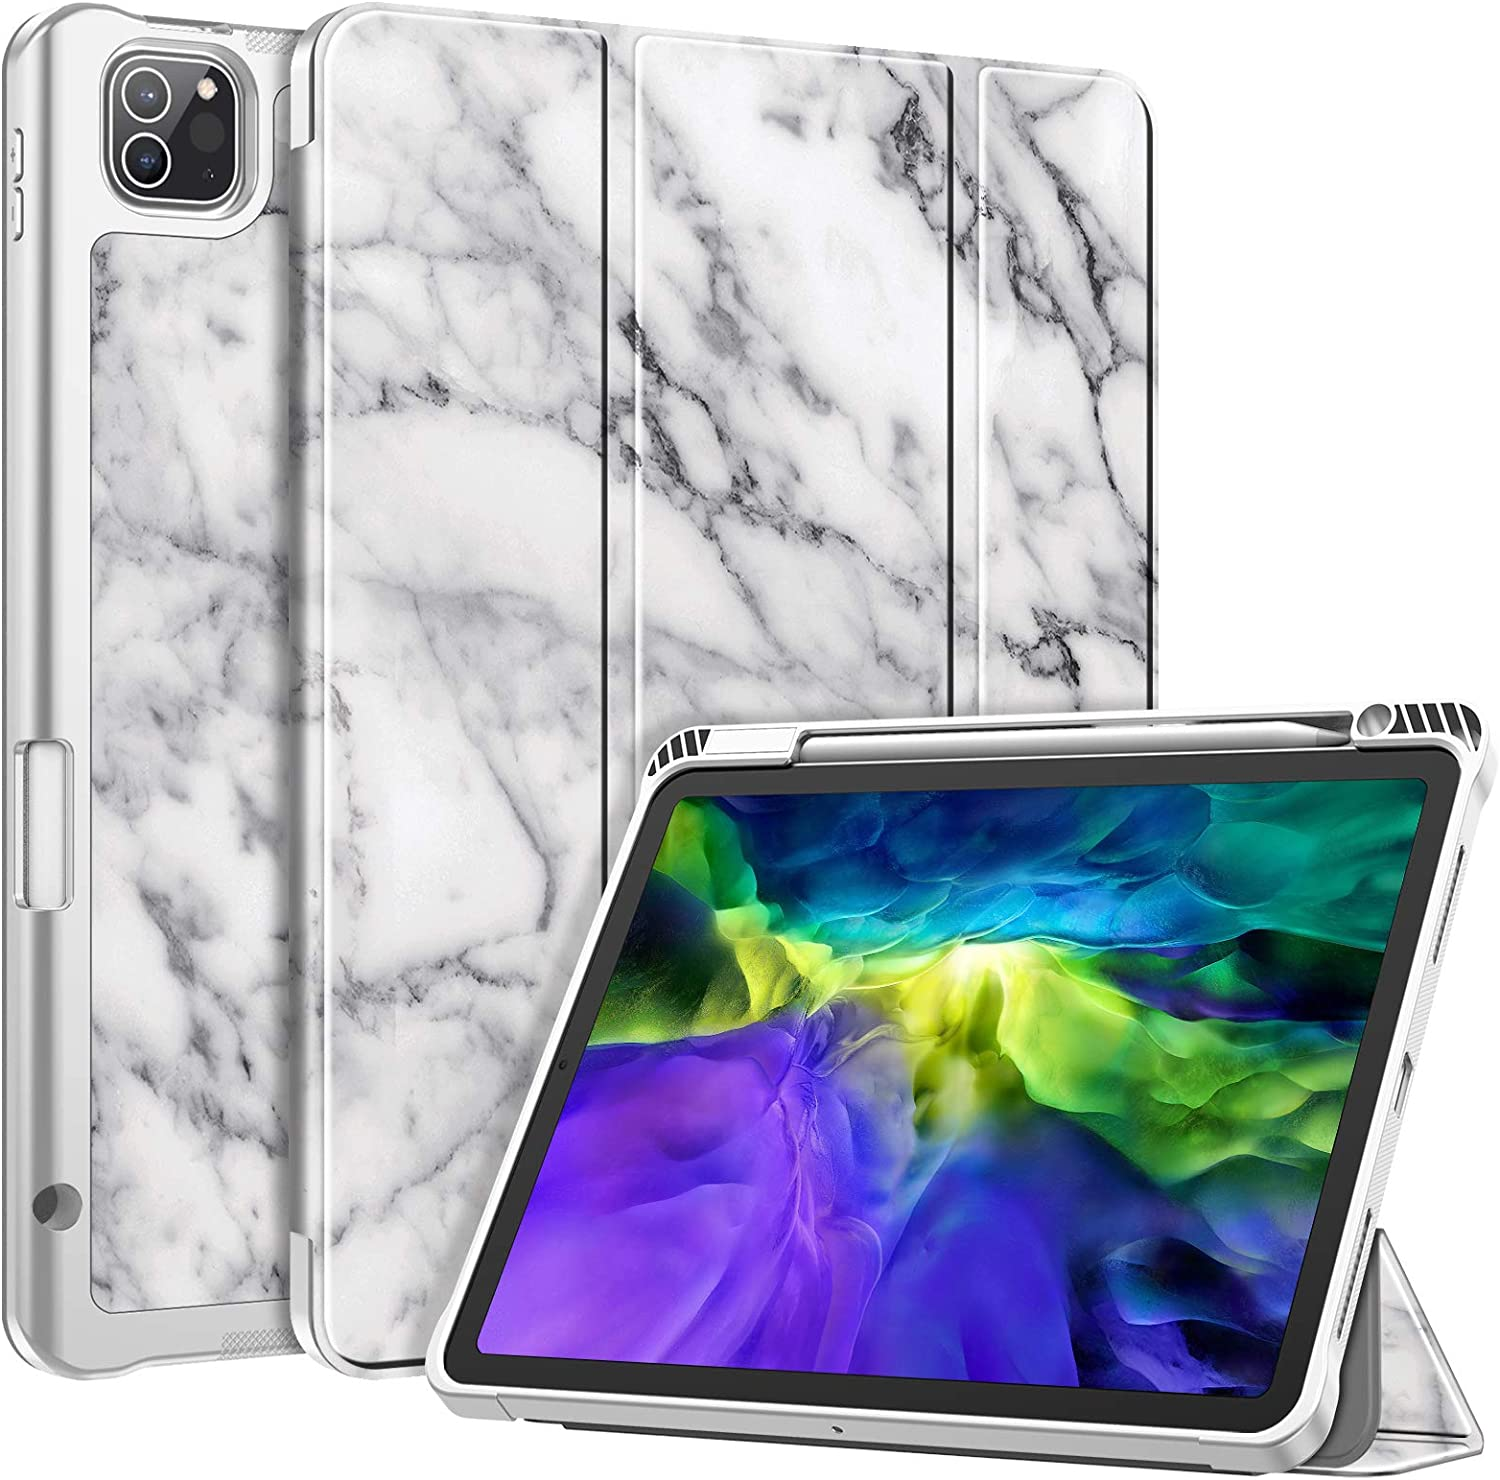 Fintie SlimShell Case with Pencil Holder for iPad Pro 11 Inch 2nd & 1st Generation 2020/2018 - [Supports 2nd Gen Pencil Charging] Soft TPU Stand Back Cover with Auto Wake/Sleep, Marble White